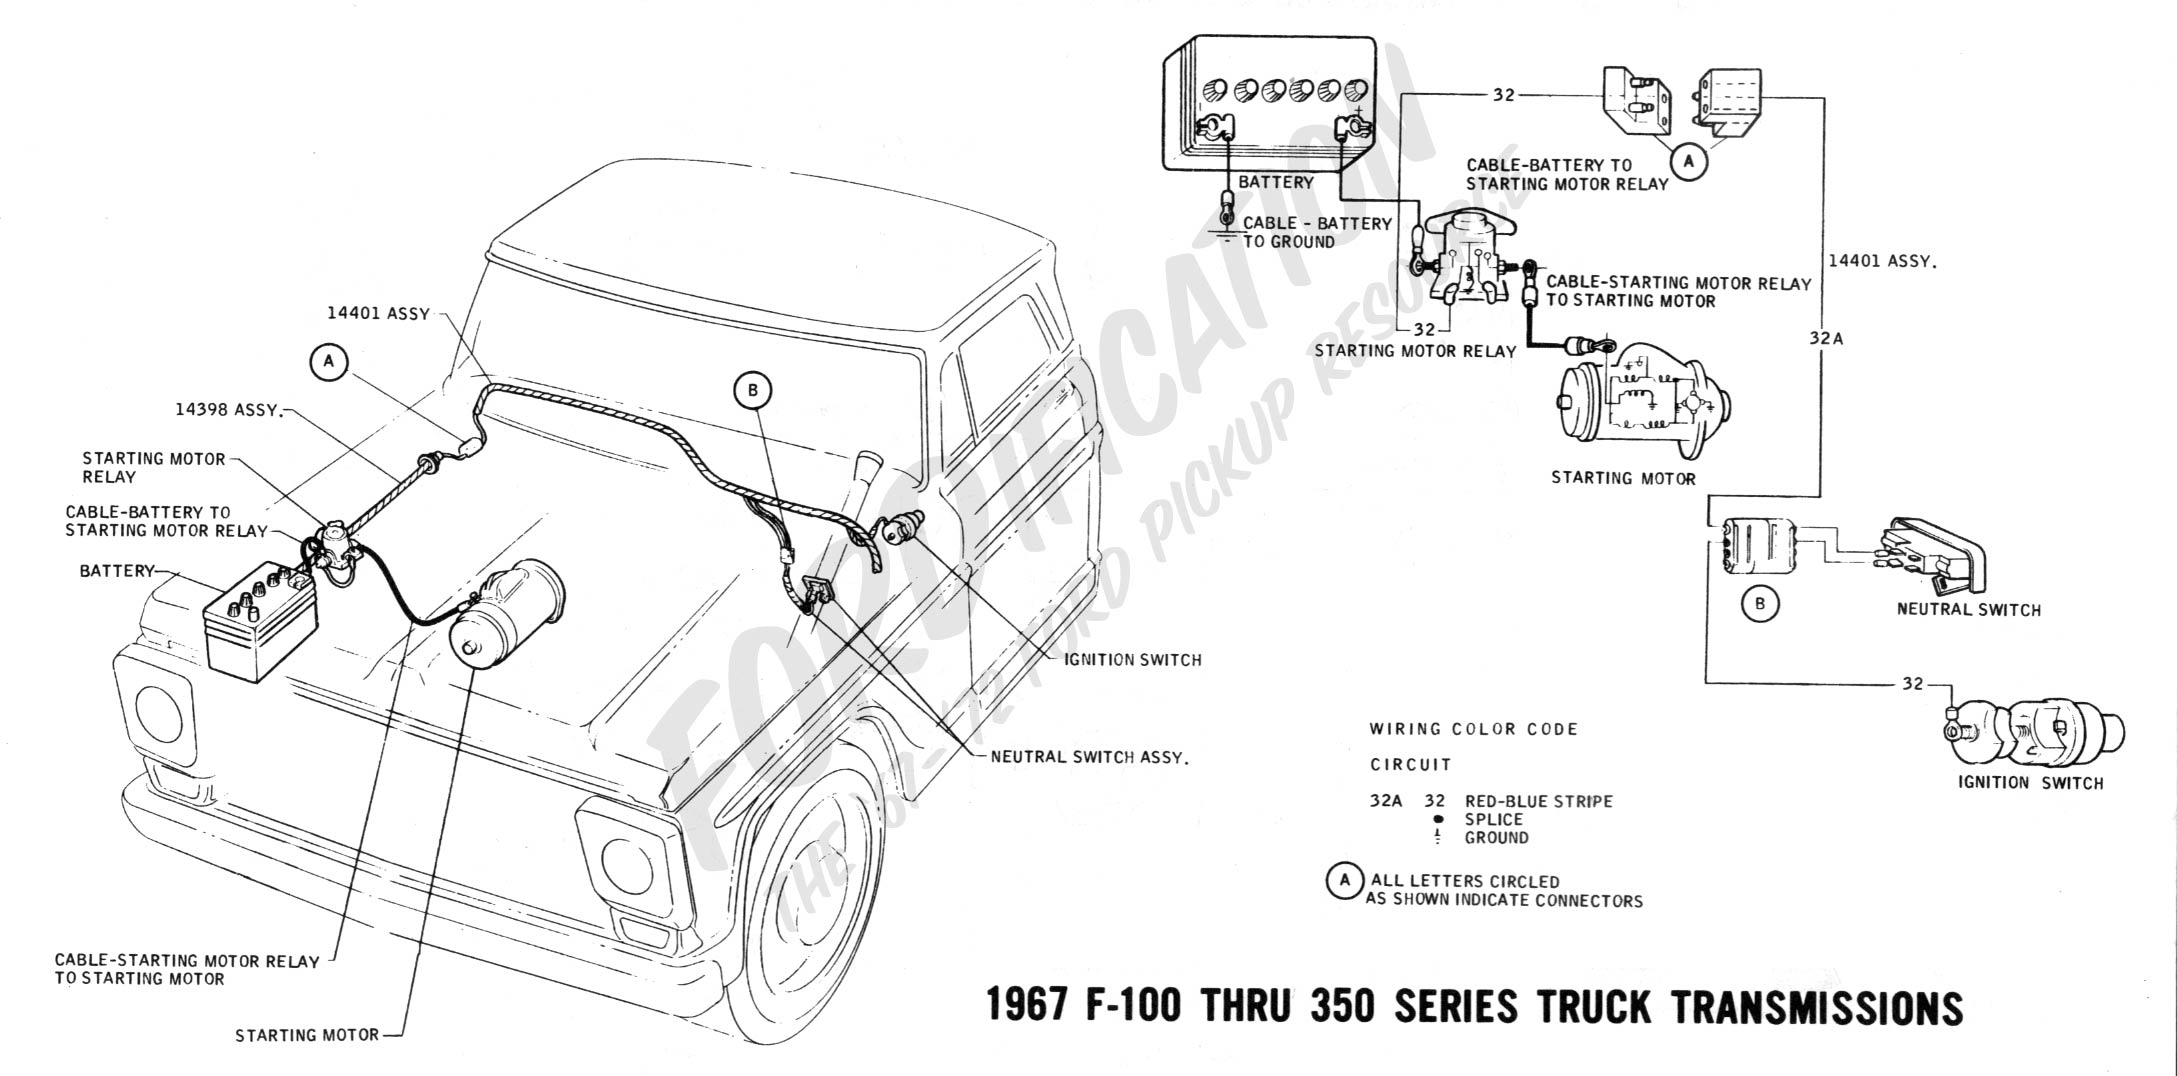 wiring 1967trucktranny ford truck technical drawings and schematics section h wiring Ford F700 Wiring Diagrams at bayanpartner.co